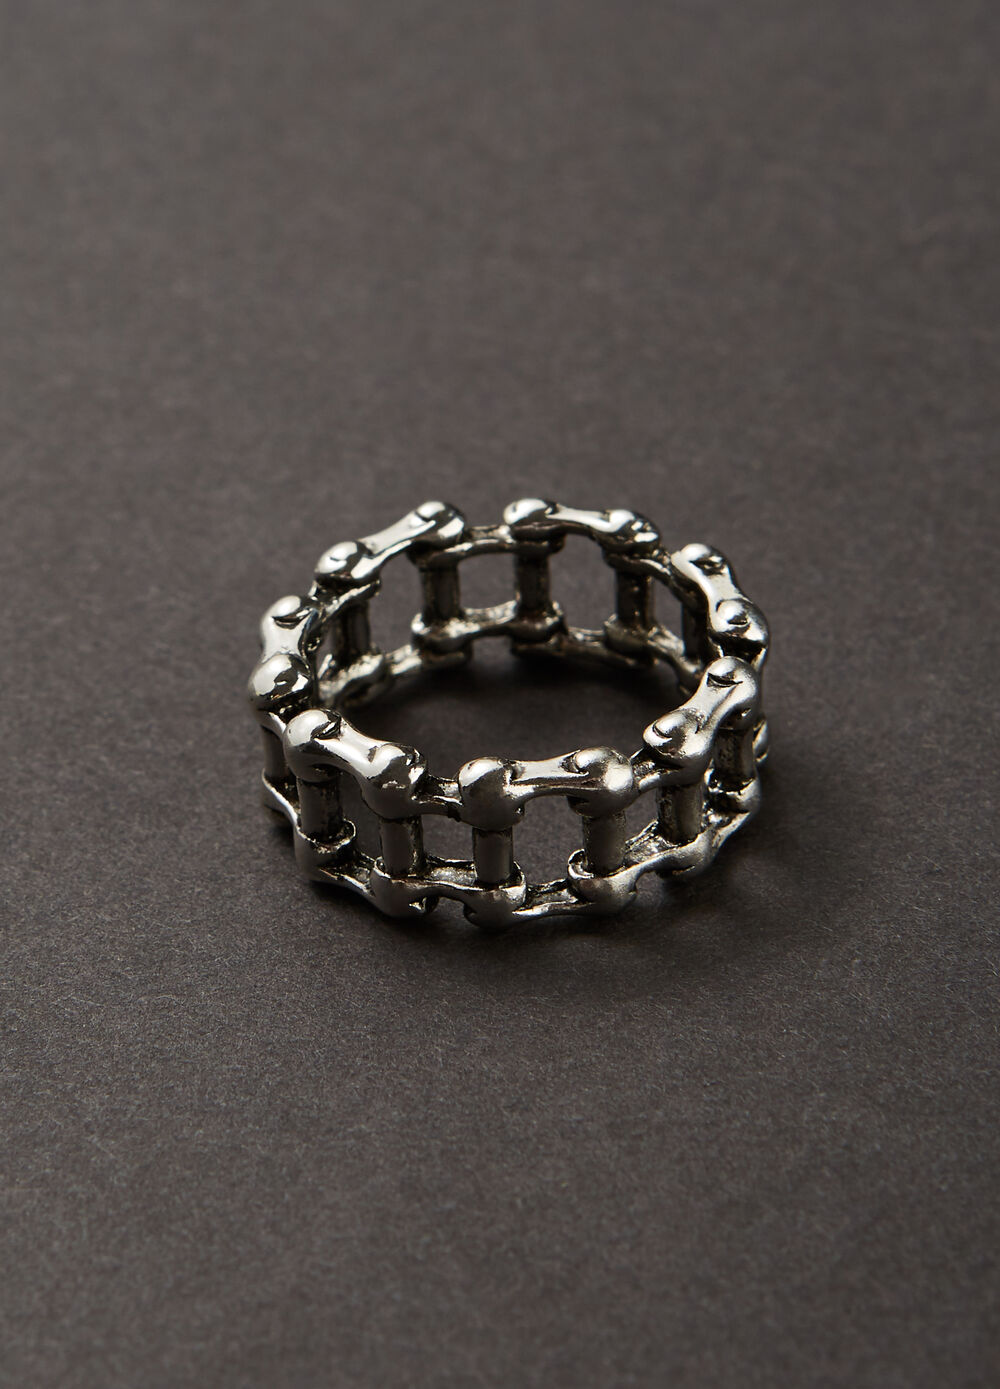 Steel ring with perforated motif